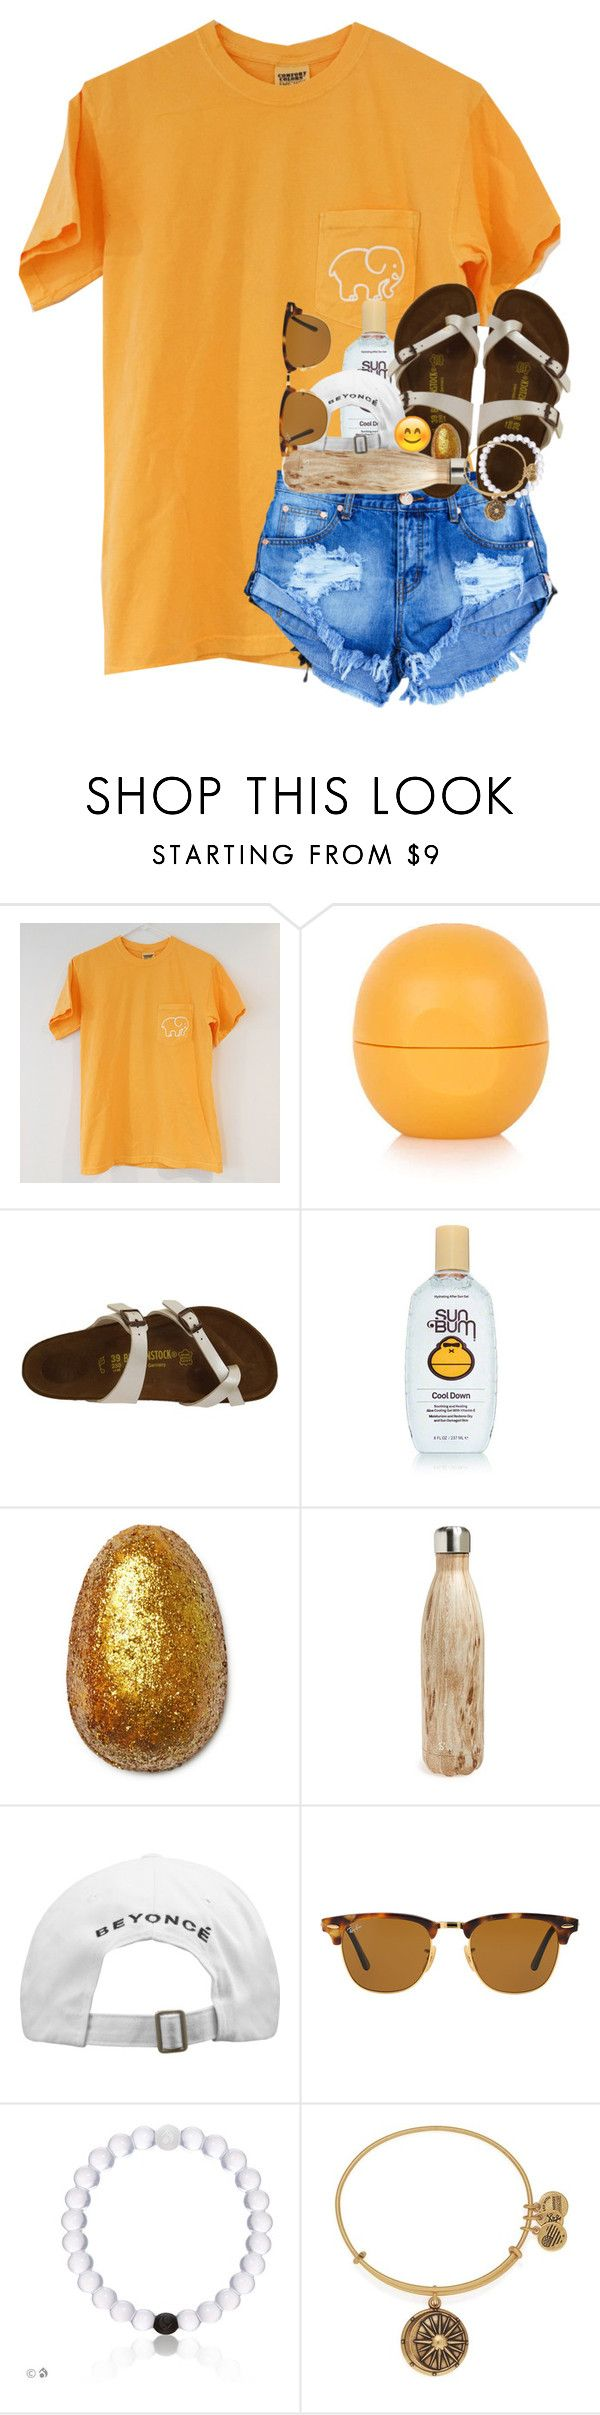 Account refresh! by evedriggers ❤ liked on Polyvore featuring Topshop, Birkenstock, Sun Bum, Swell, Ray-Ban and Alex and Ani